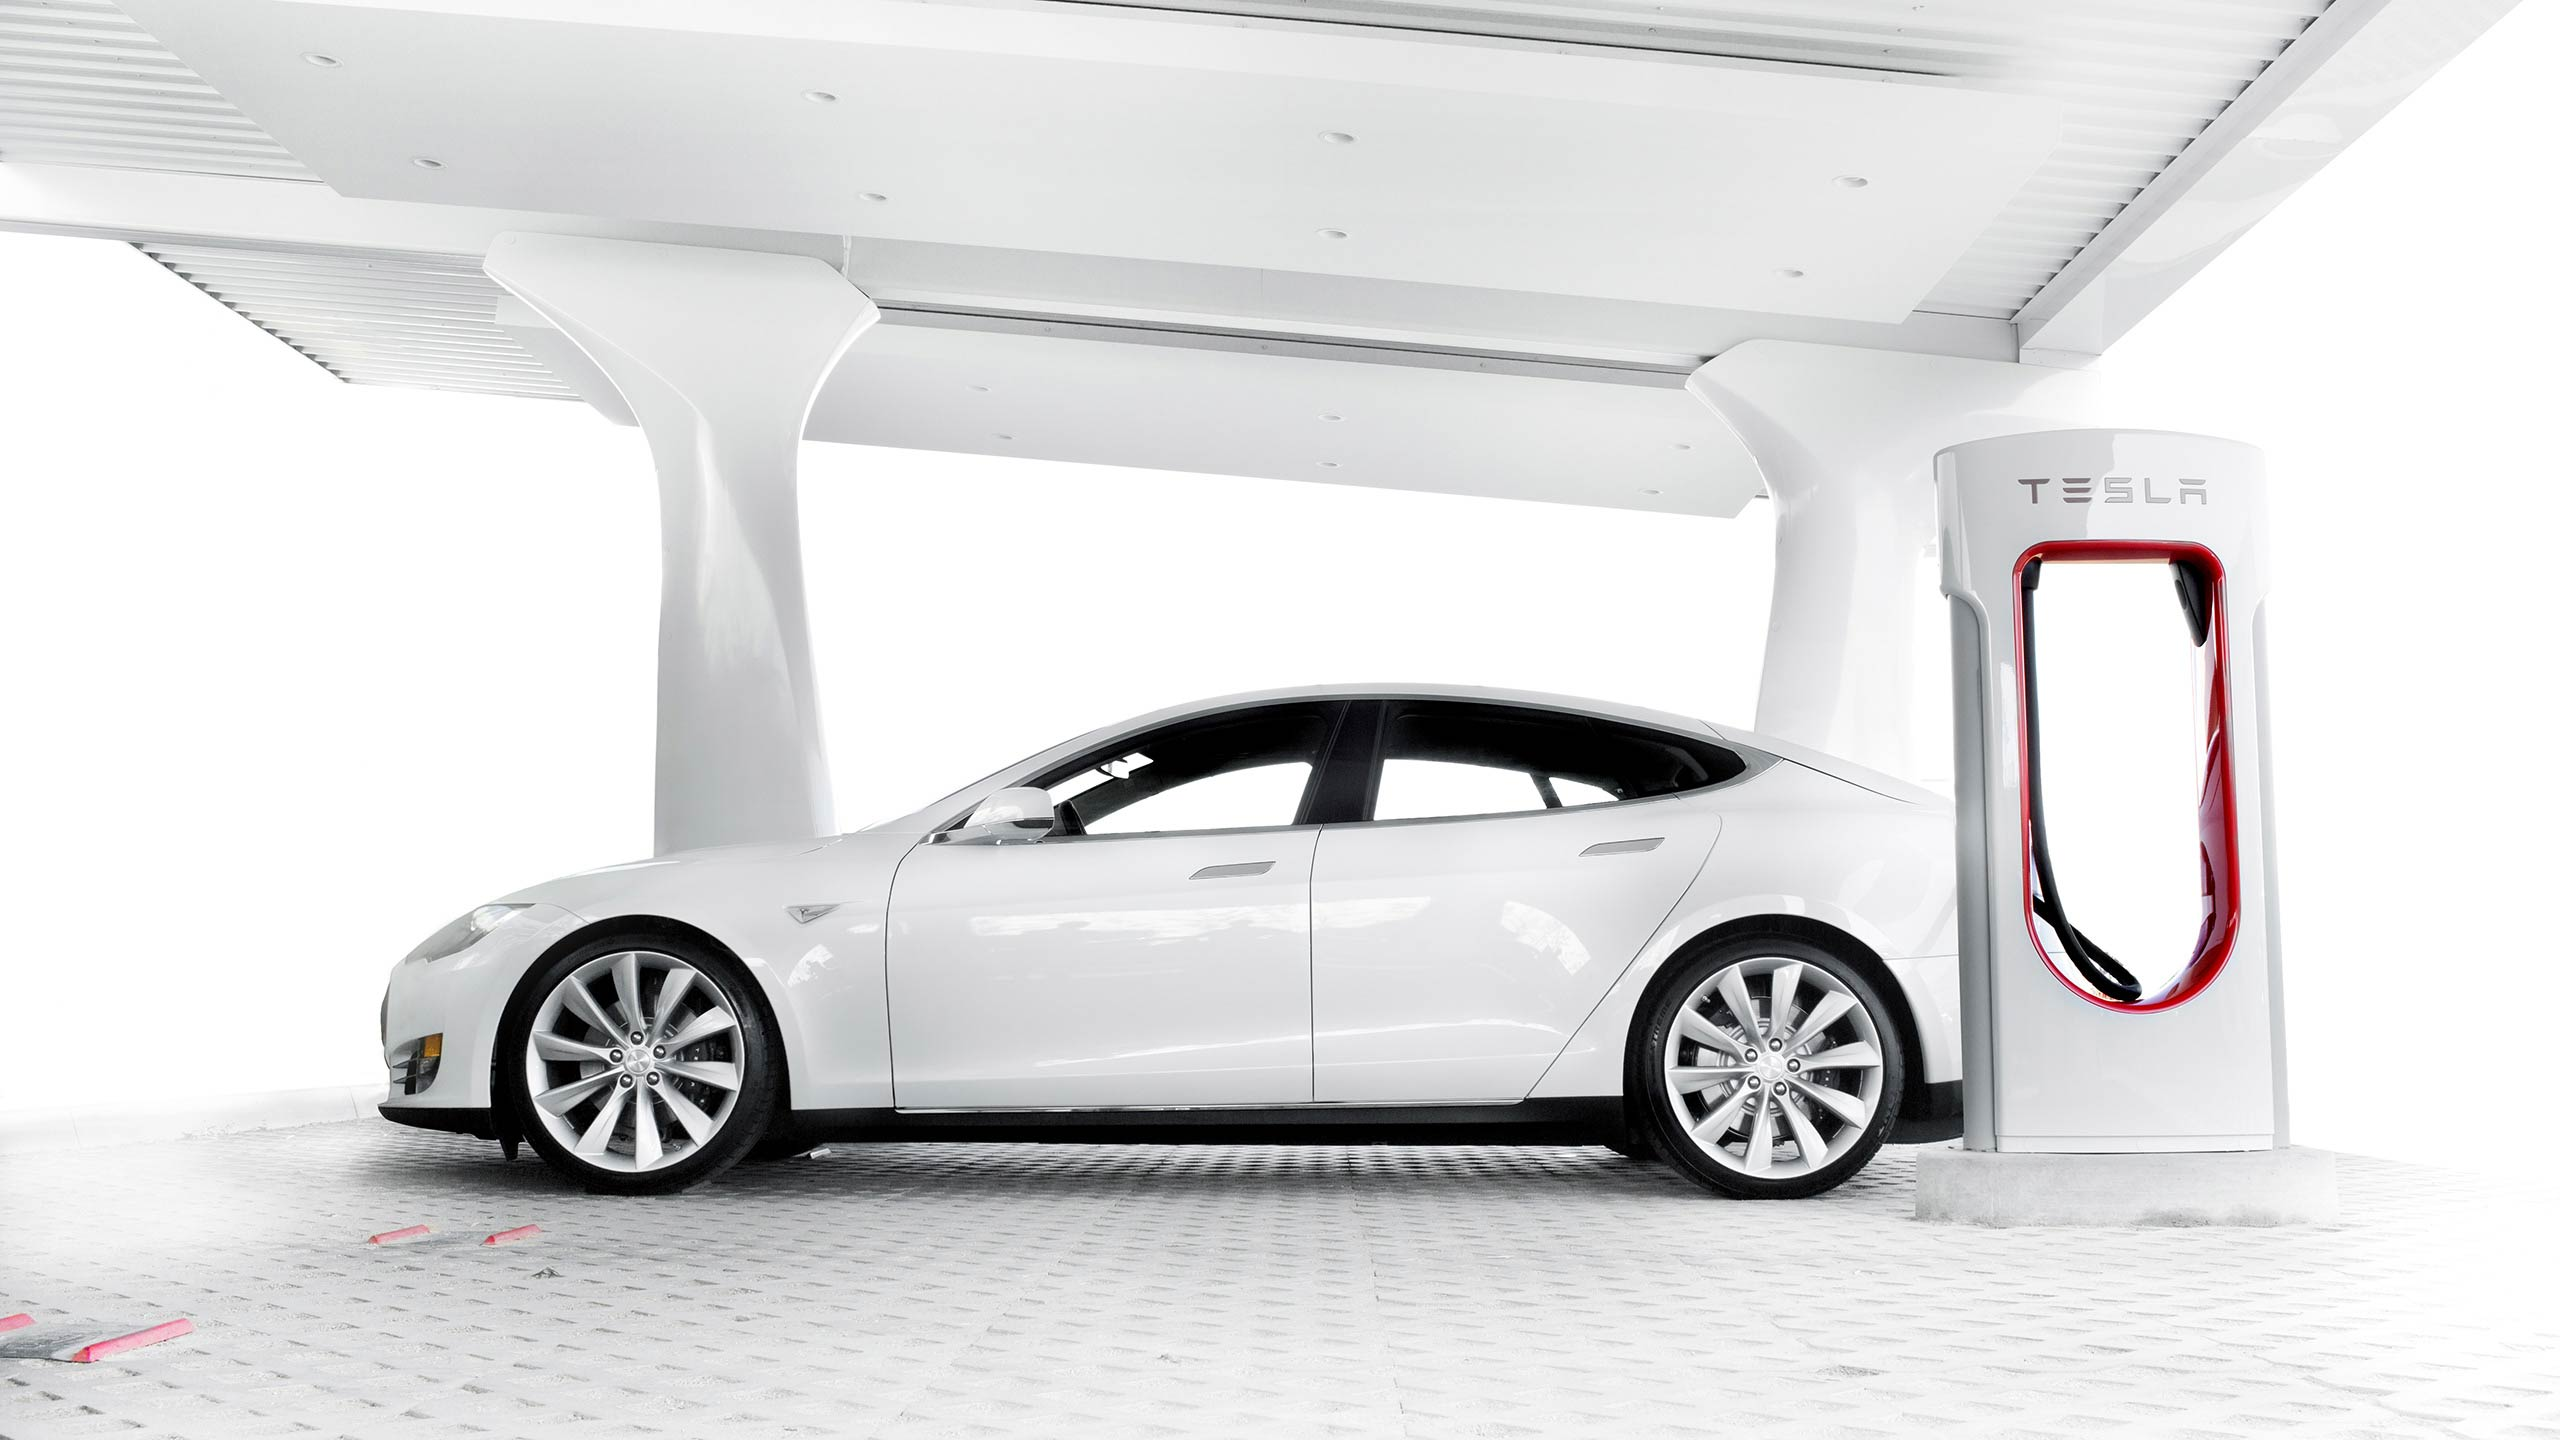 tesla s supercharger network reaches almost 400 charging stations autoevolution. Black Bedroom Furniture Sets. Home Design Ideas